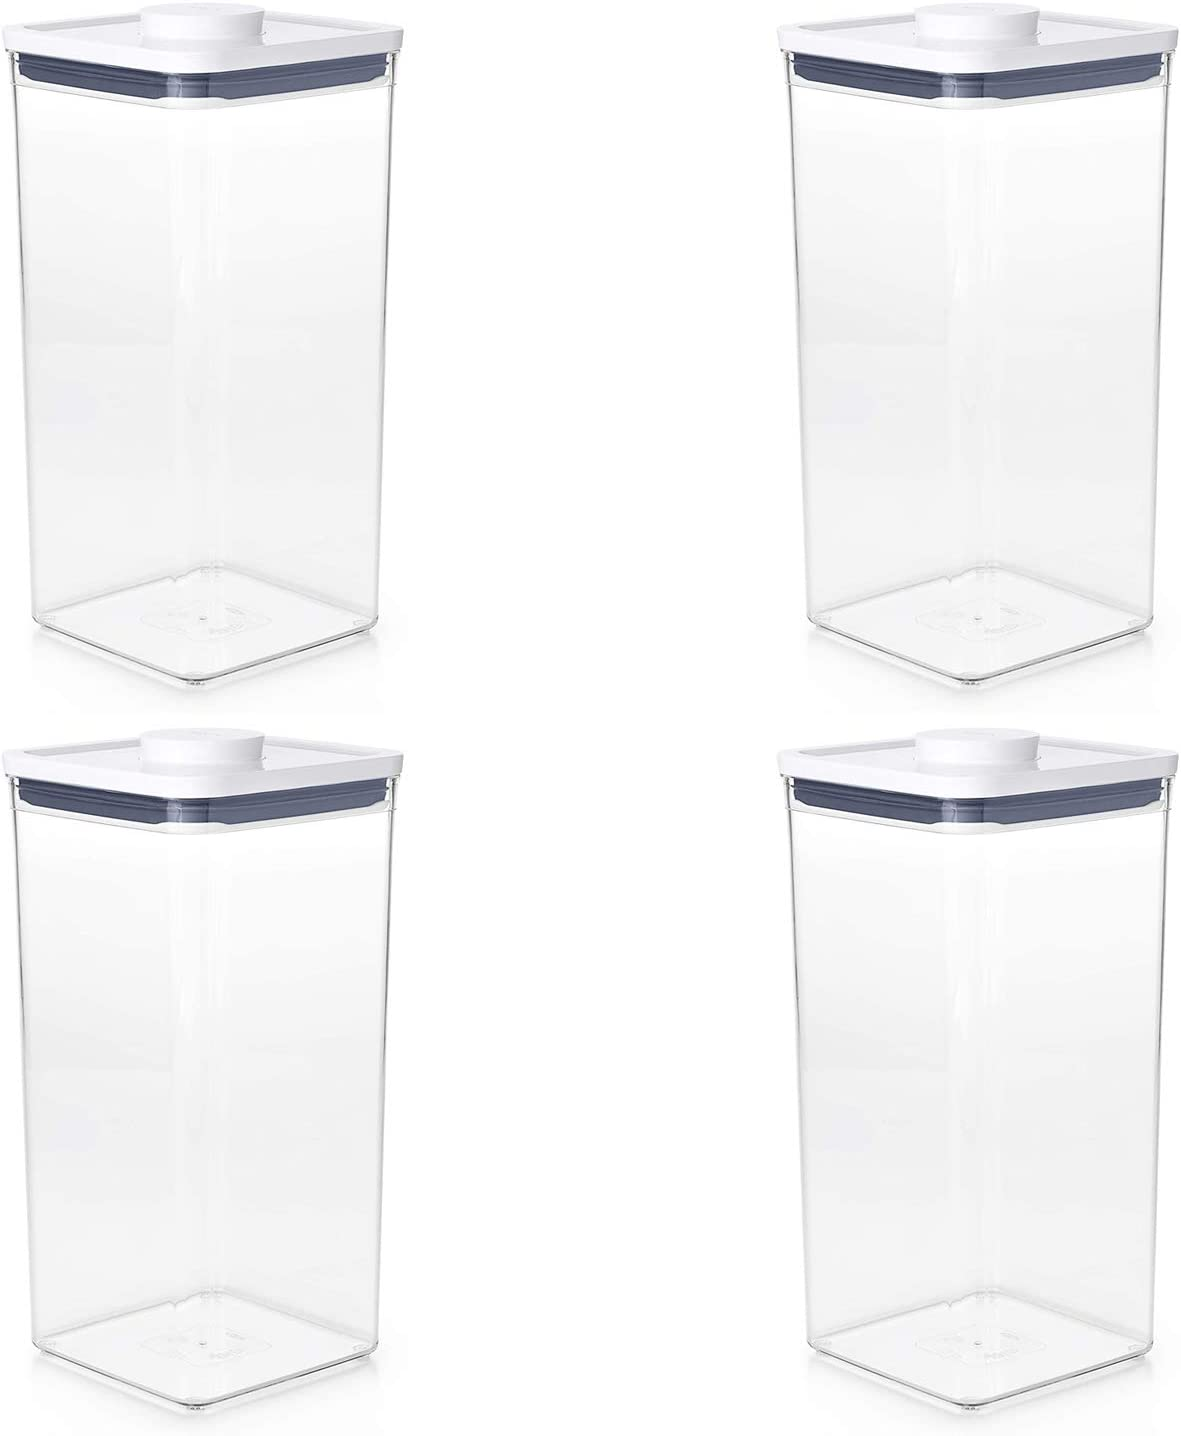 OXO 11233400 Good Grips Pantry Organization Airtight 6 Quart Bulk Food Storage Rectangular POP Container Made of BPA Free Plastic, Clear (4 Pack)